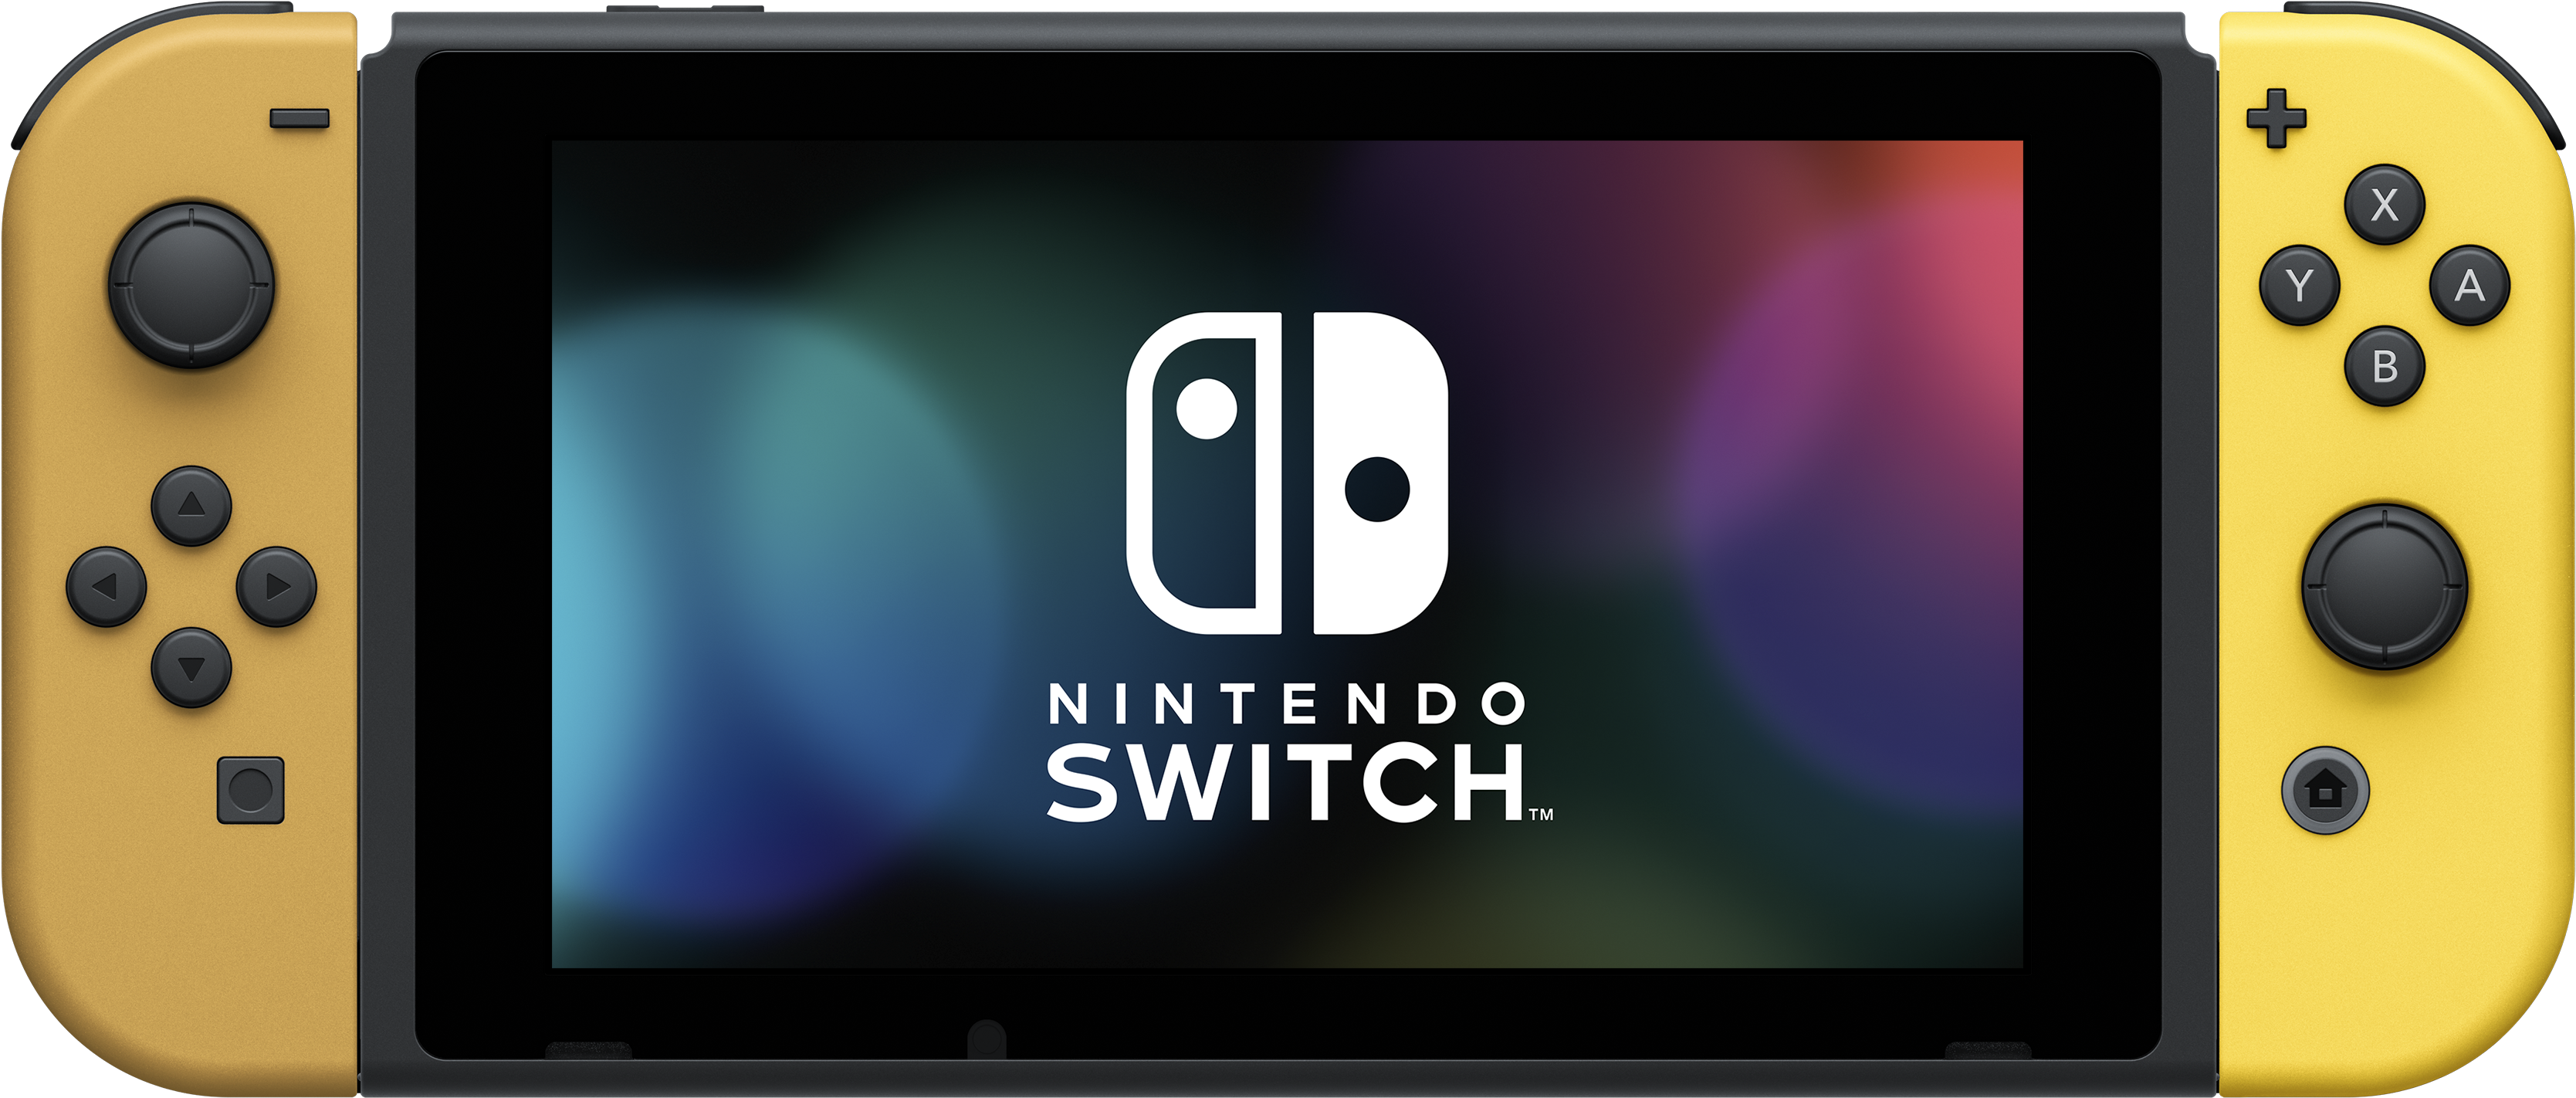 Download 1 Of Nintendo Switch Pikachu Eevee Edition Full Size